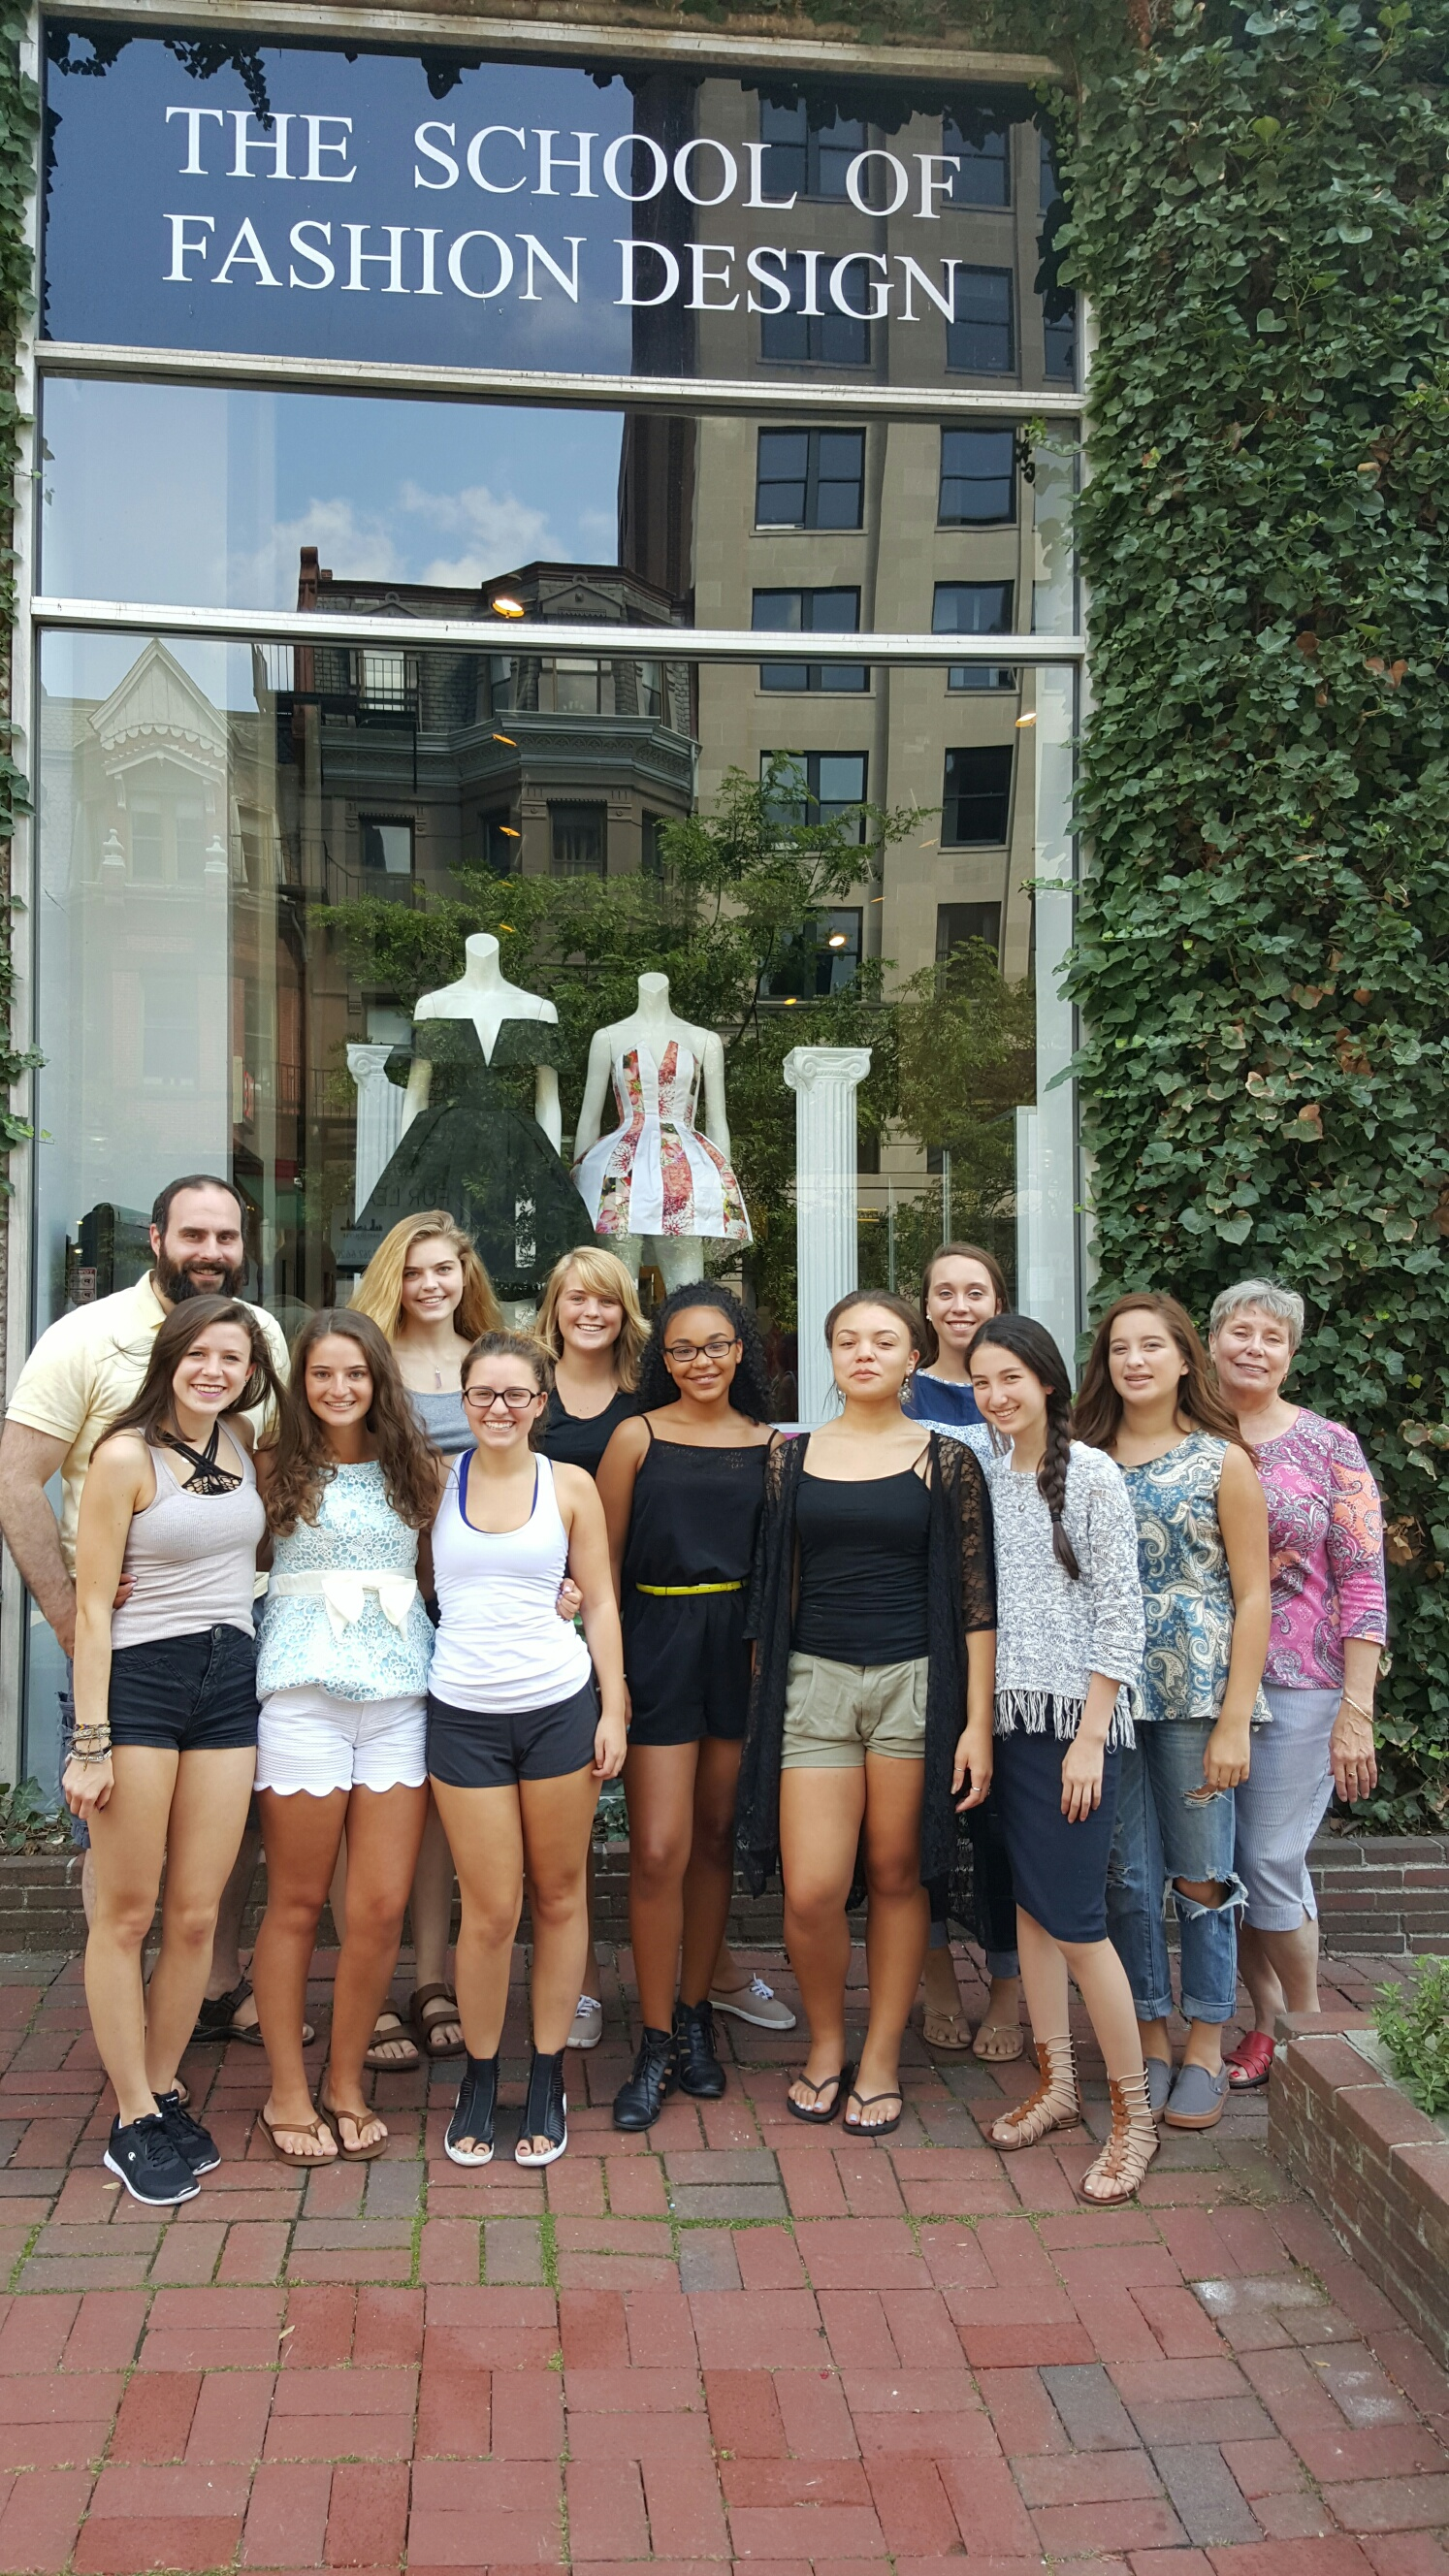 Summer Program - Visual Arts | Teen Fashion Clinics - School of Fashion Design